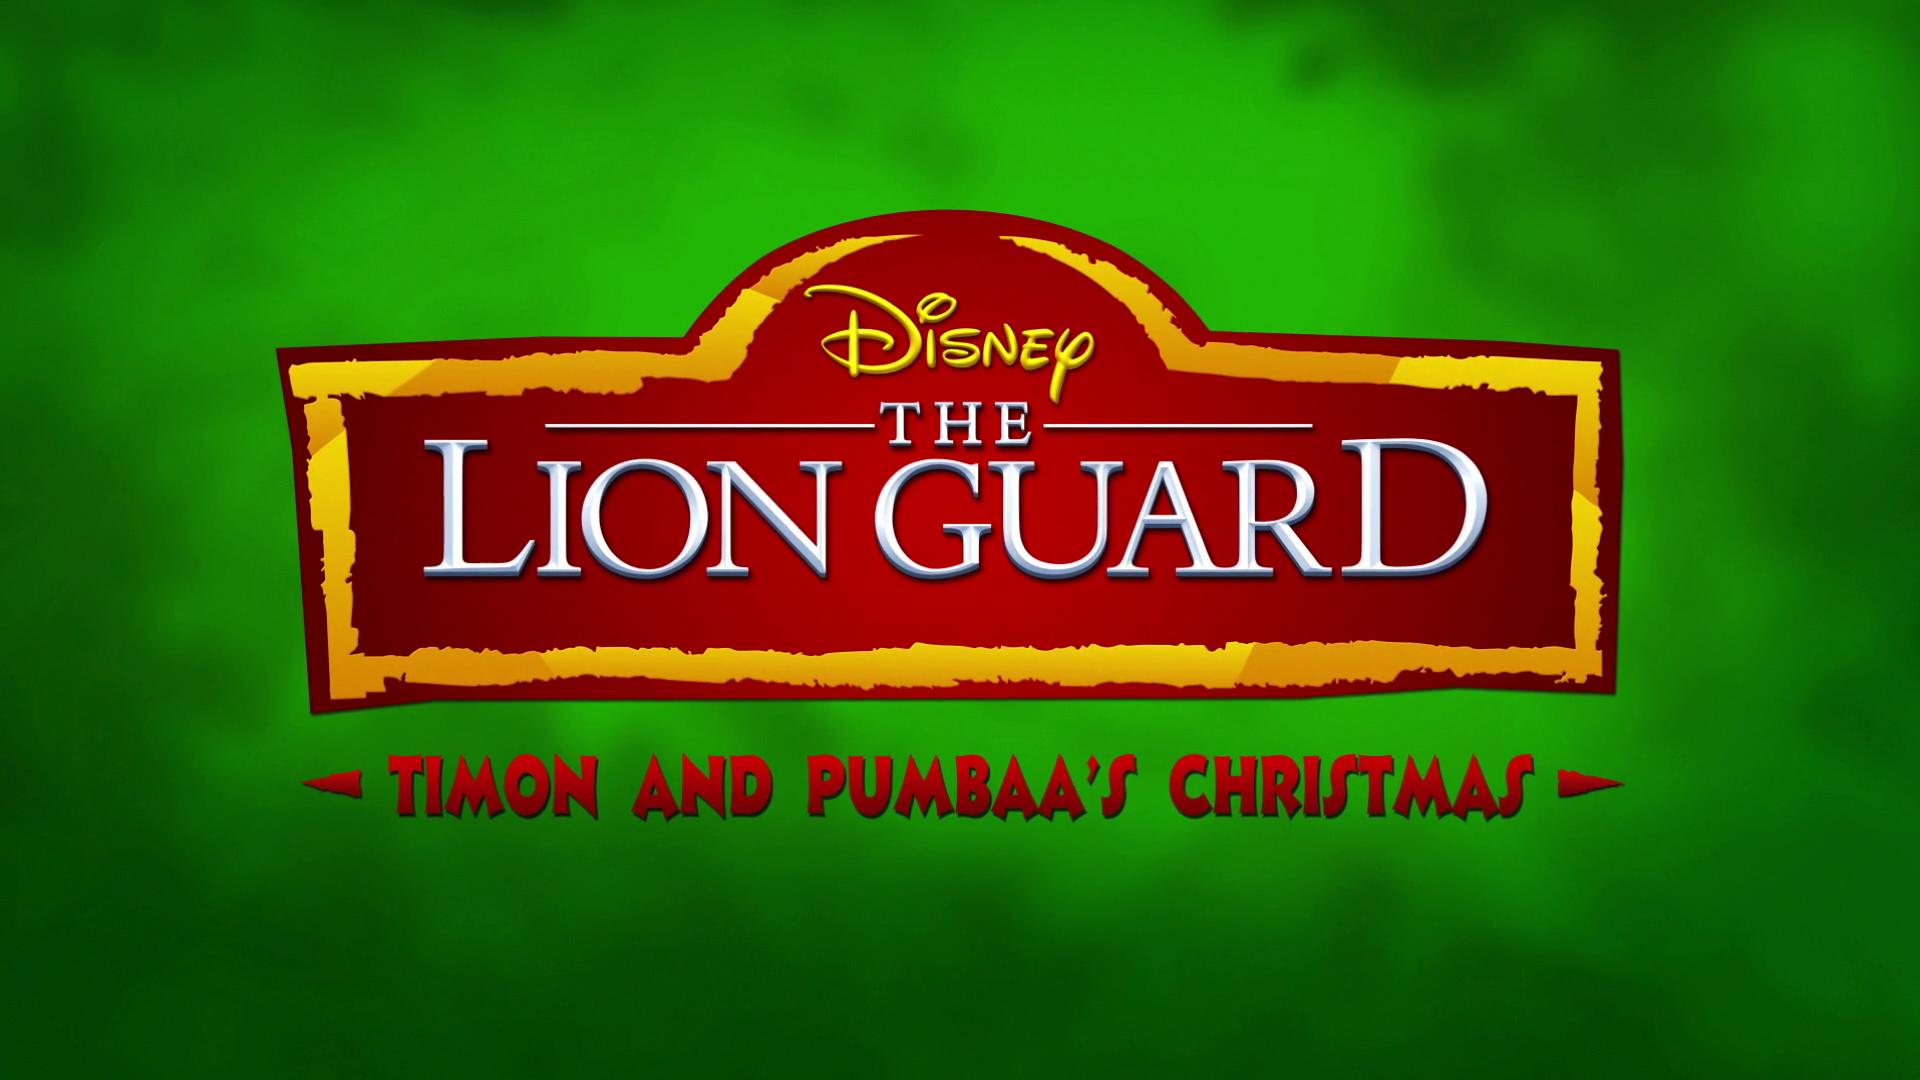 Timon and Pumbaa's Christmas